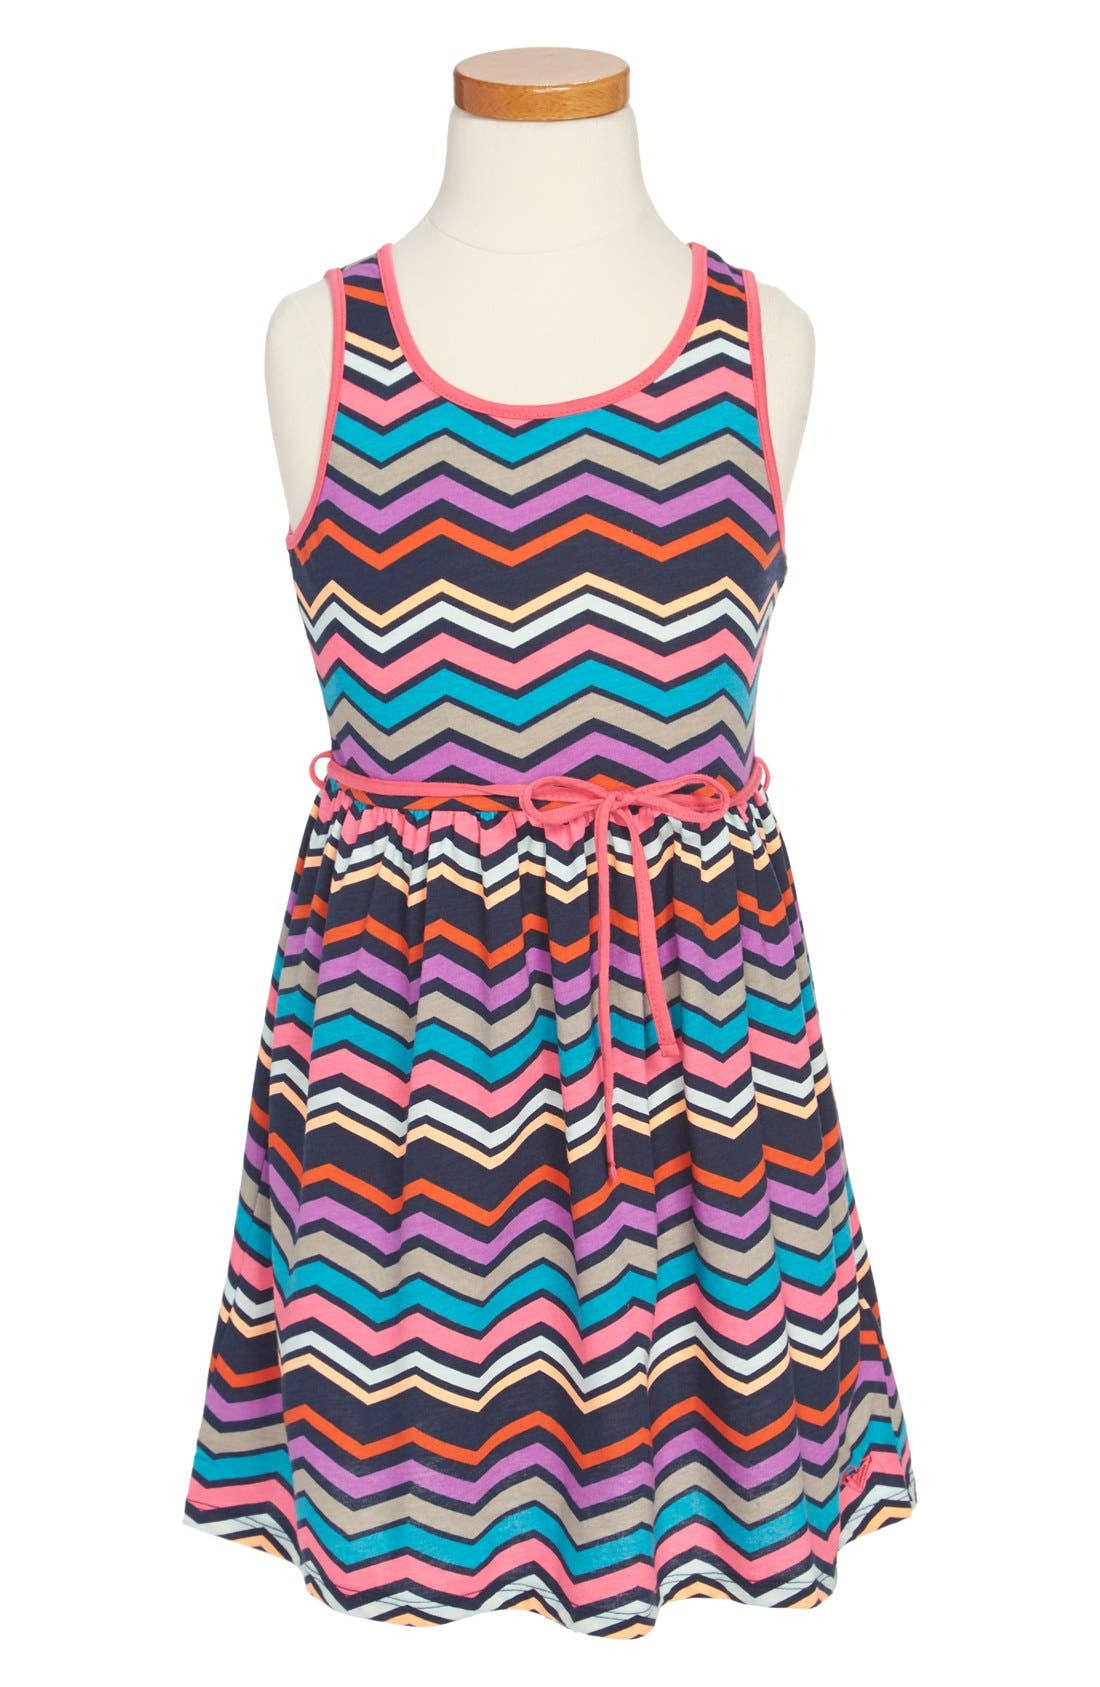 Main Image - Roxy 'Sweltering Heart' Tank Dress (Toddler Girls)